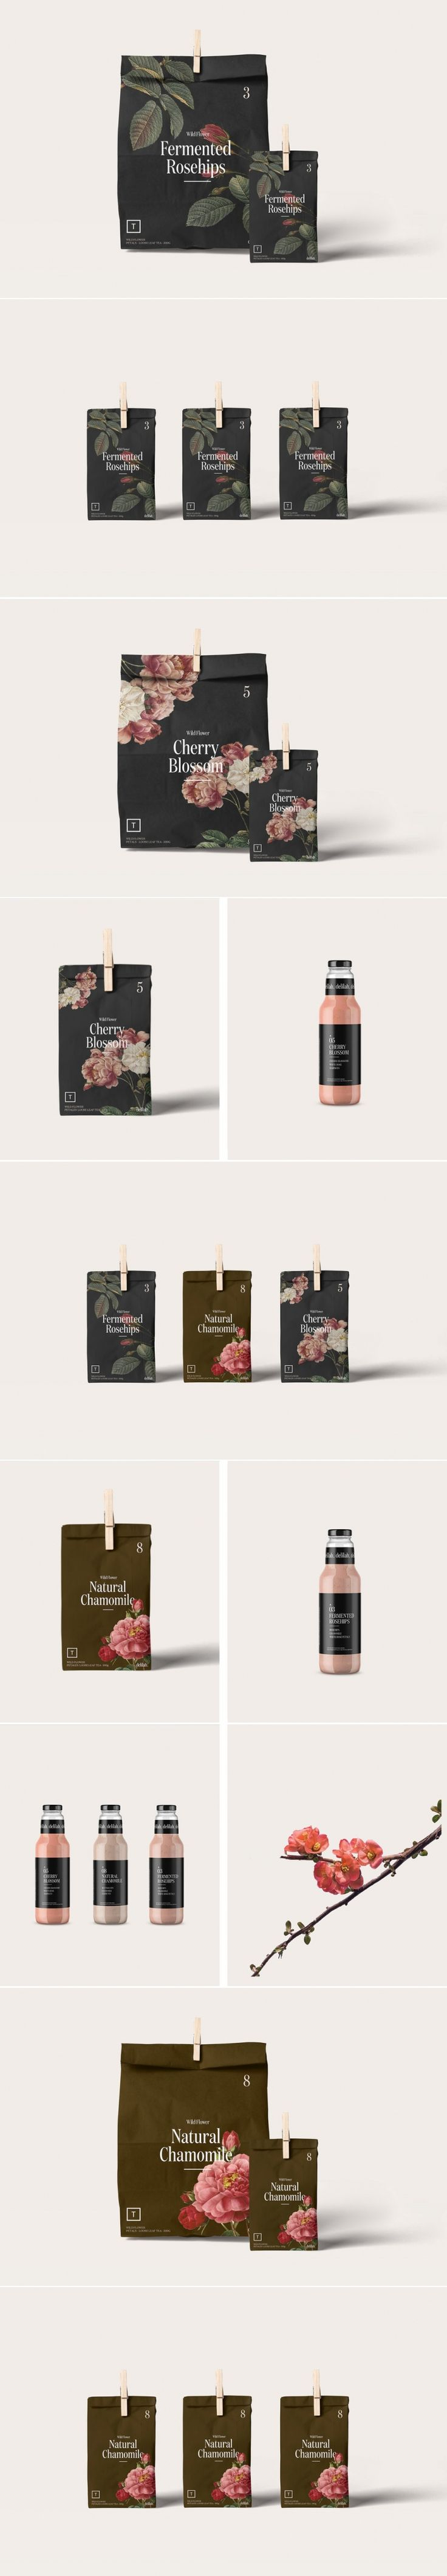 This Tea Packaging Embo s a Simple Sophistication